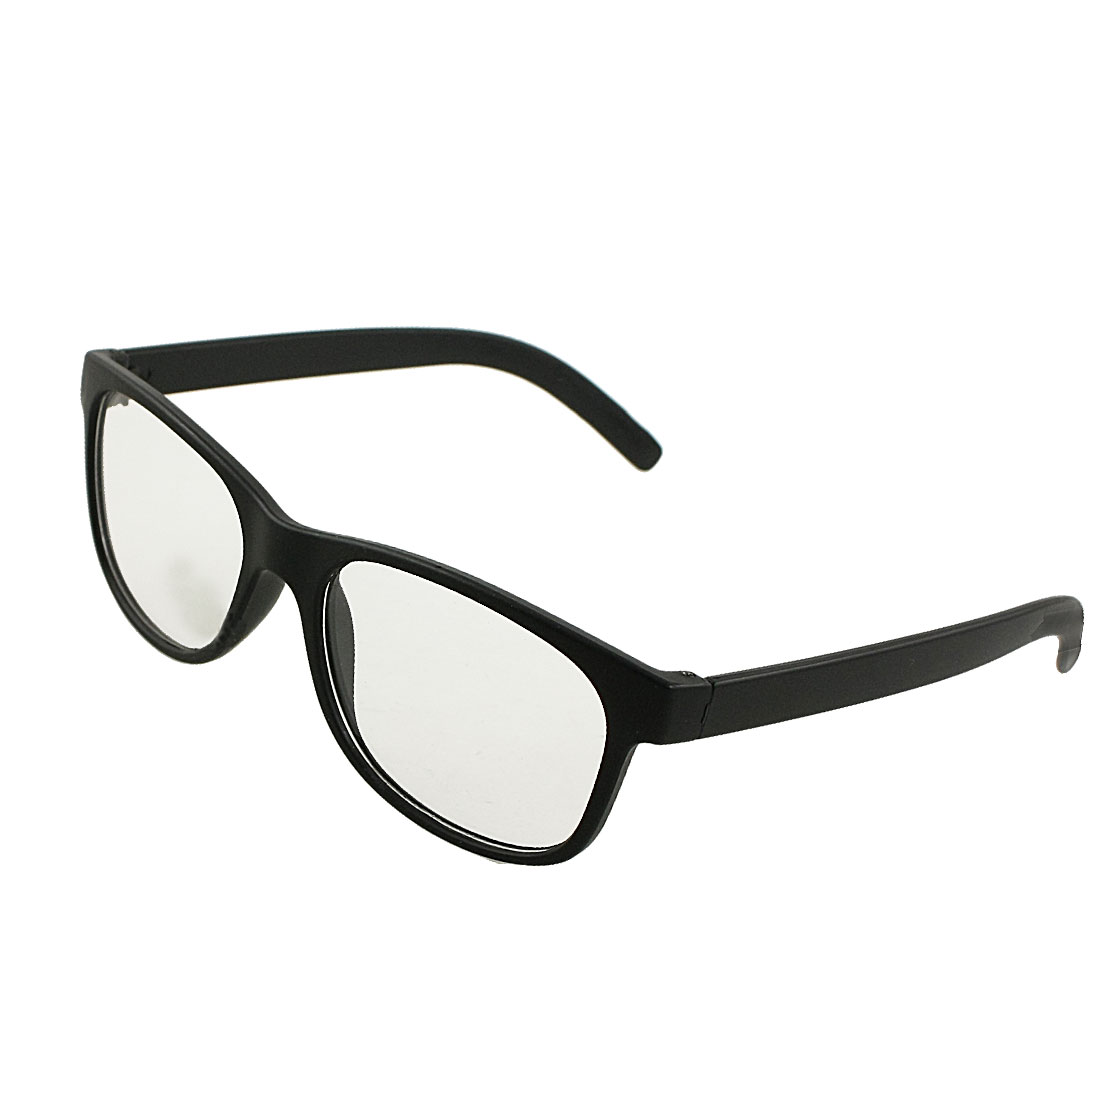 Single Bridge Black Plastic Frame Oversize Clear Lens Unisex Plain Glasses